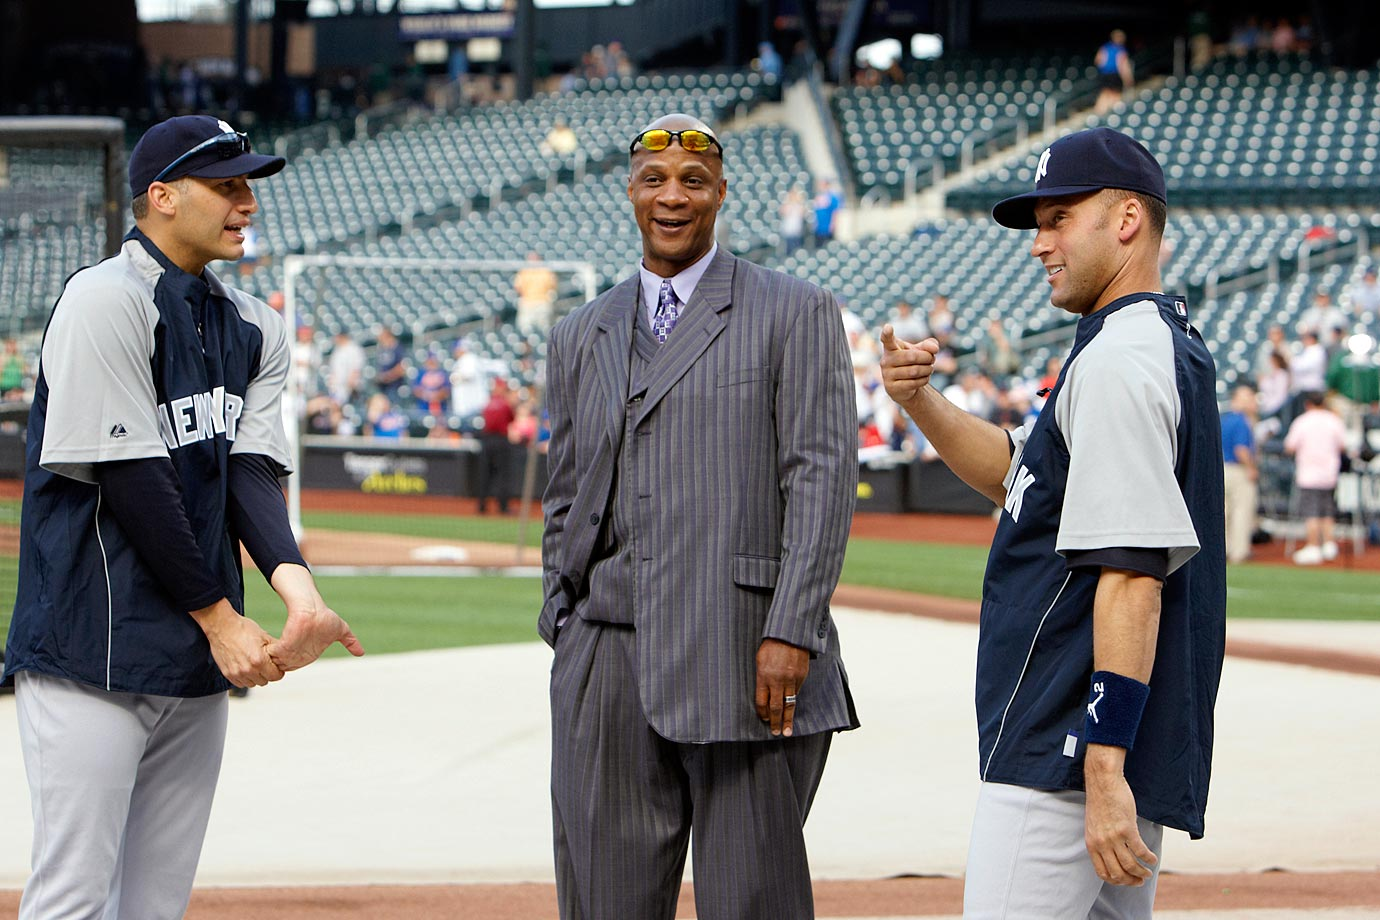 with Derek Jeter and Andy Pettitte